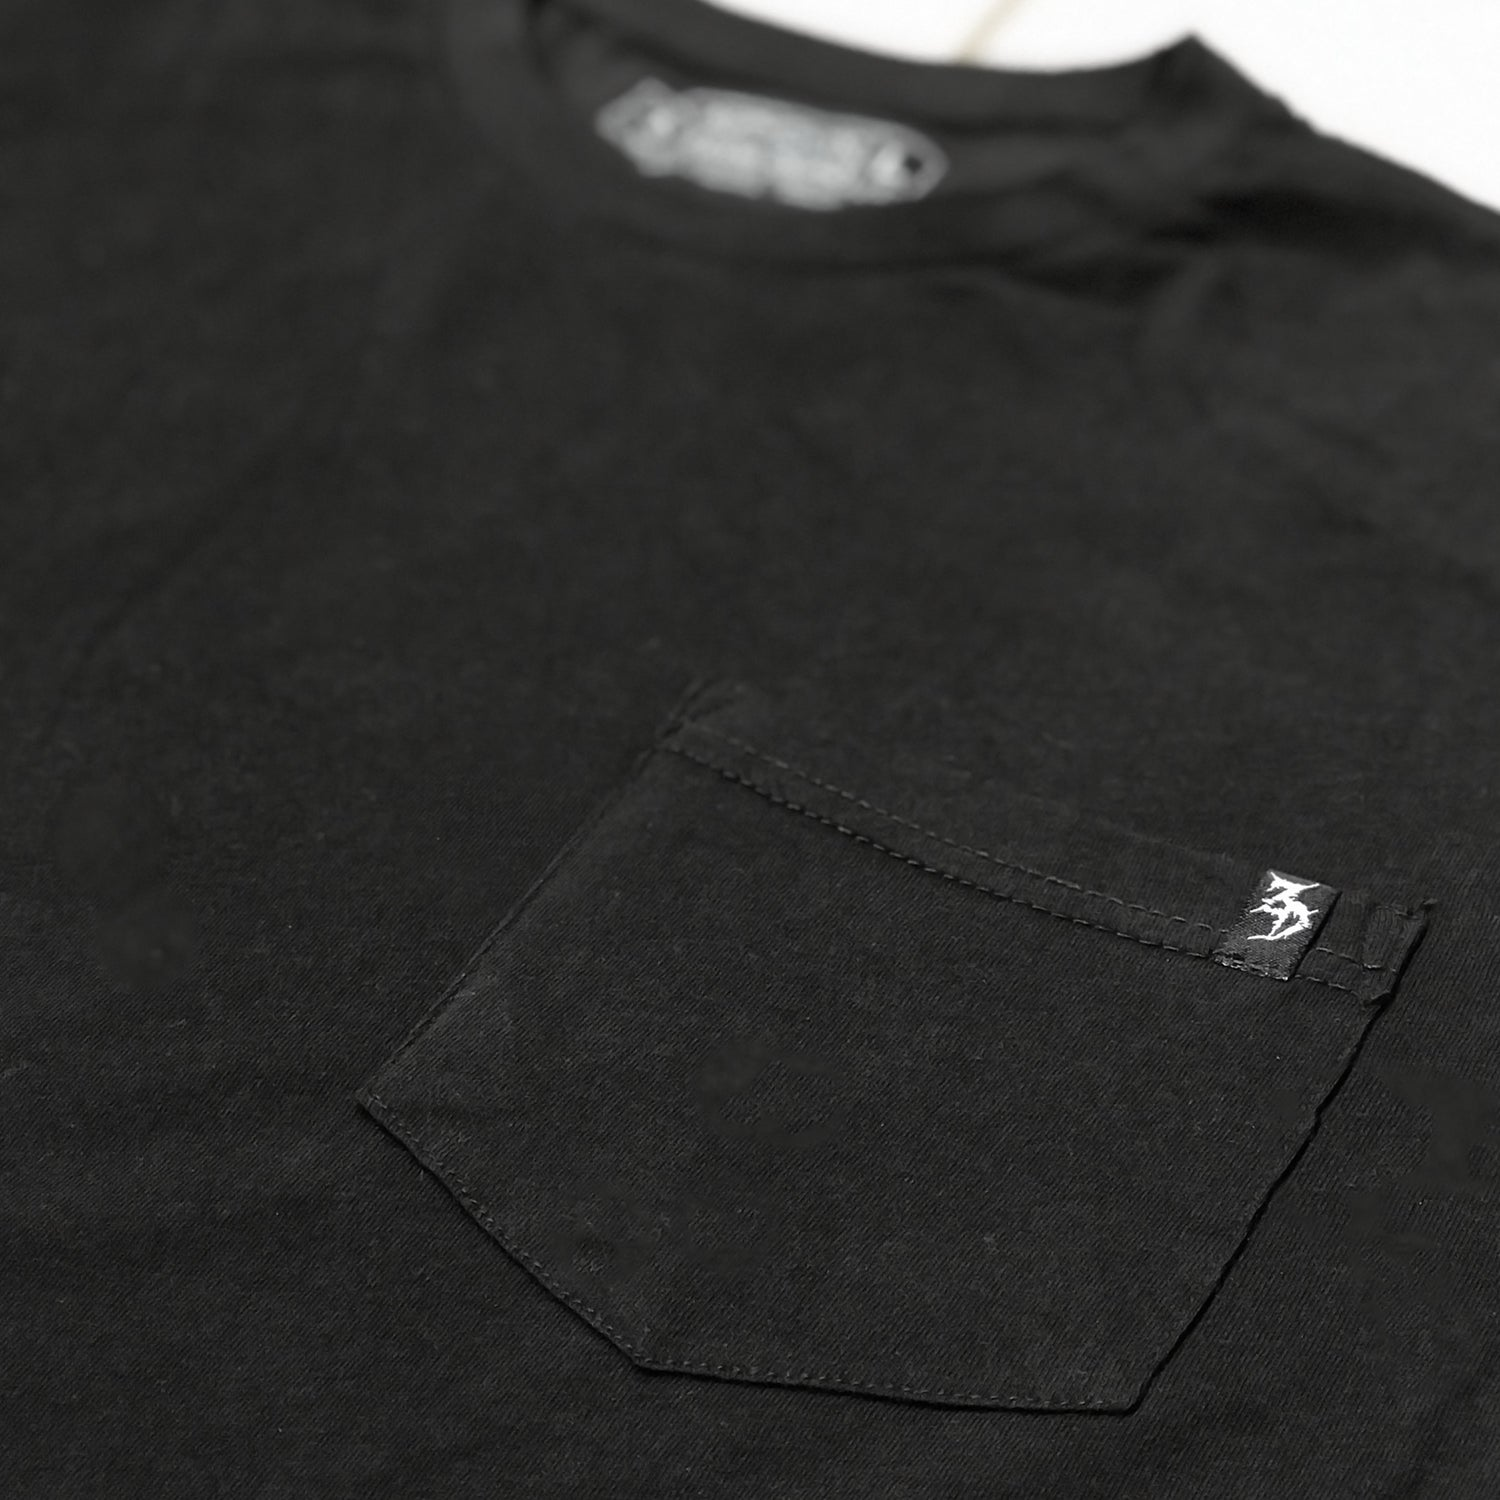 ZD - Zee - Black Pocket Tee